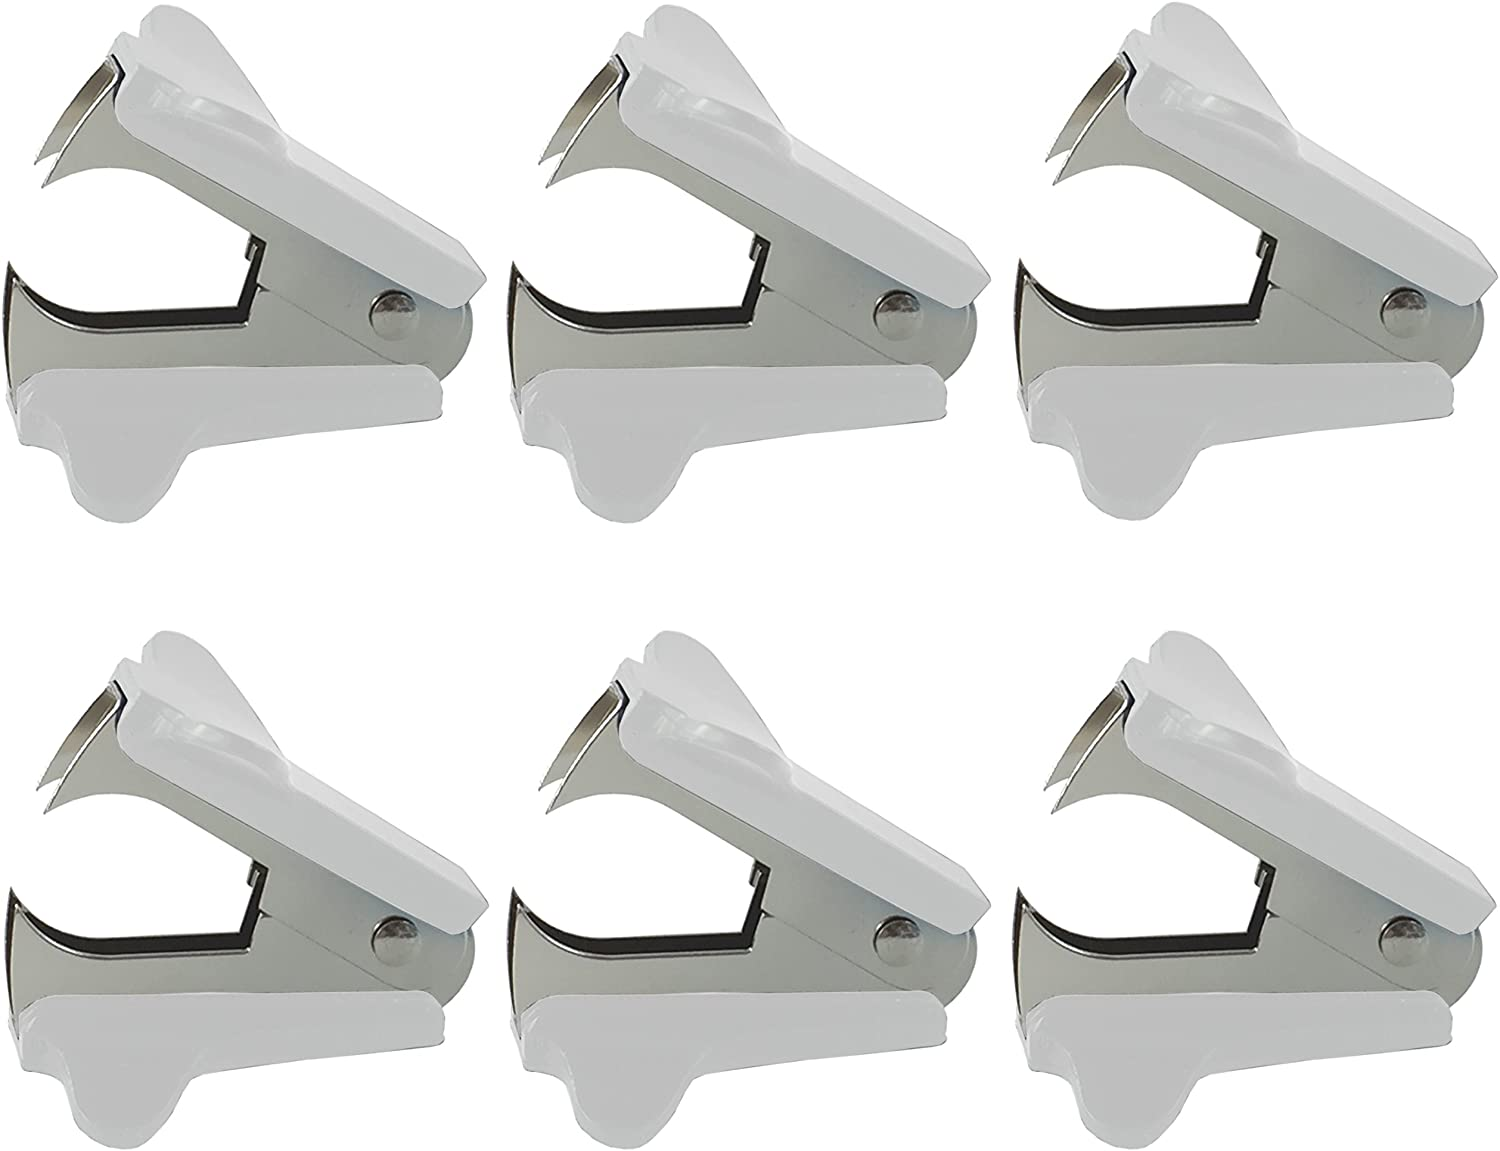 Clipco Staple Remover (6-Pack) (White)